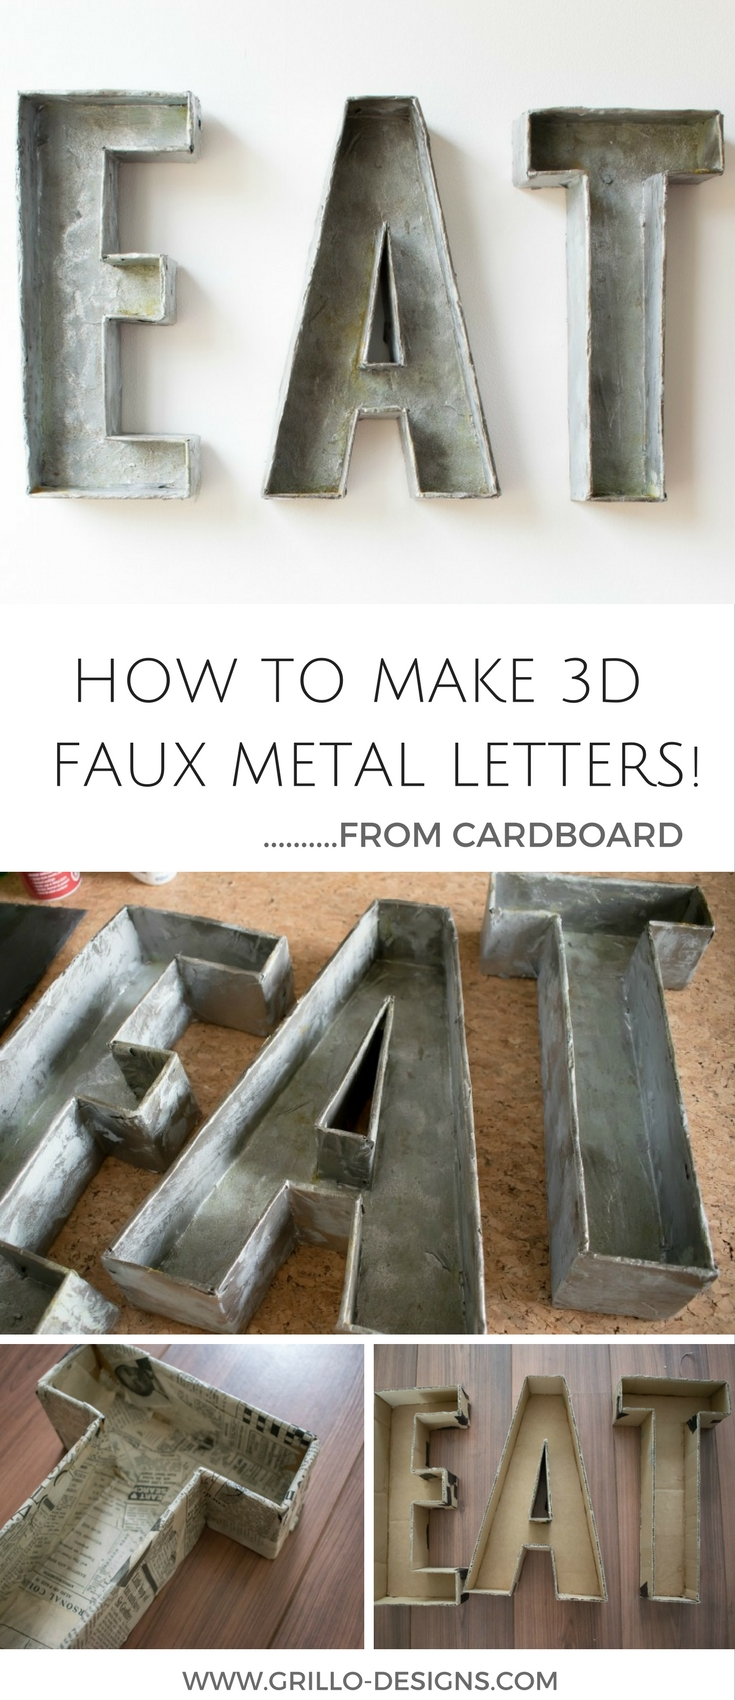 Galvanised Letters 3D Faux Metal Letters Tutorial  From Cardboard